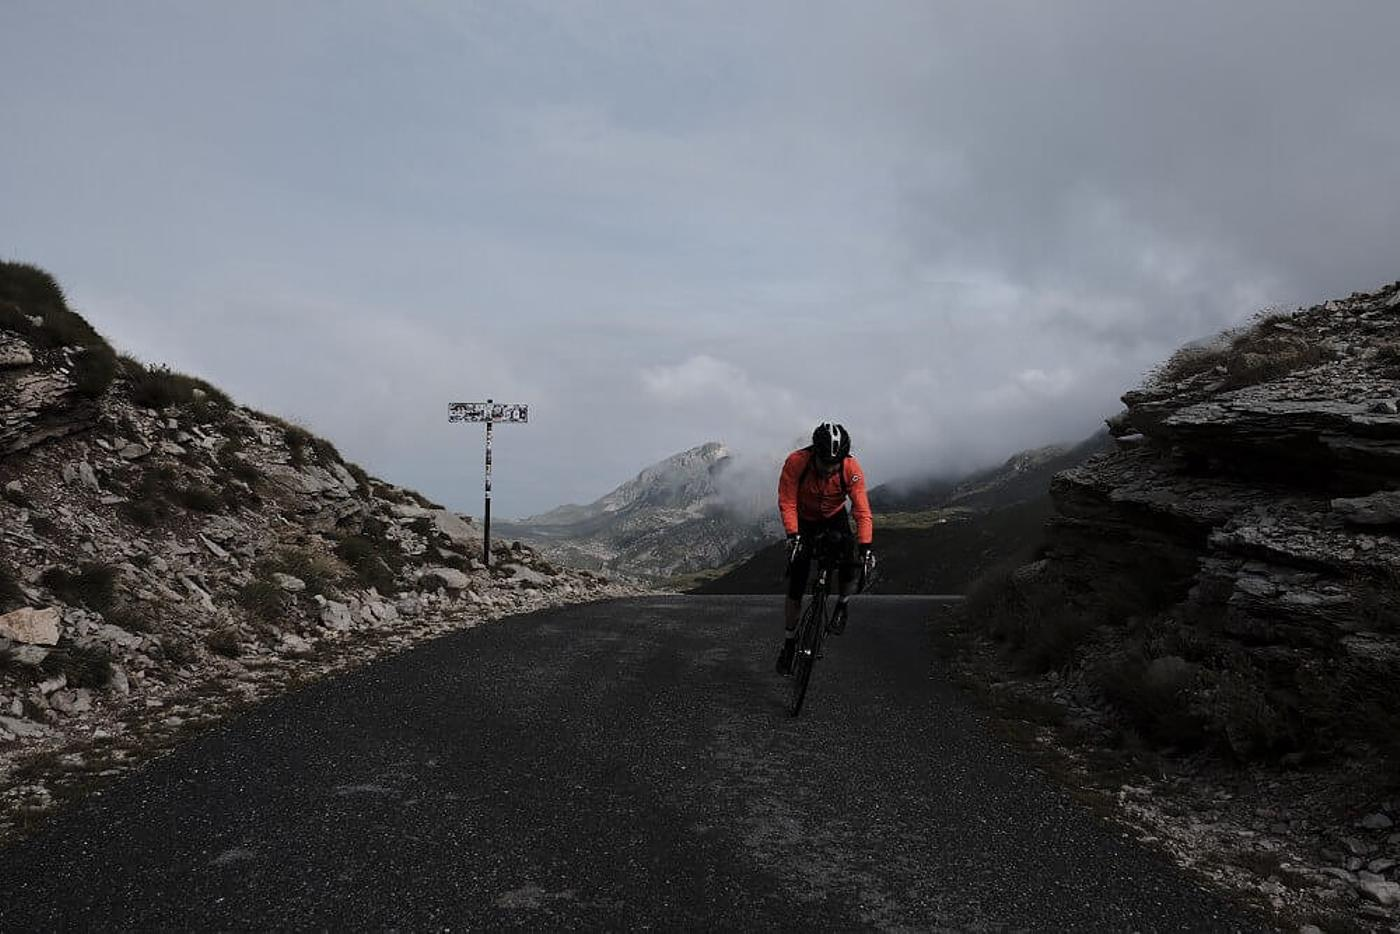 Un-Lost: Camille McMillan's Photographs of the Transcontinental Race